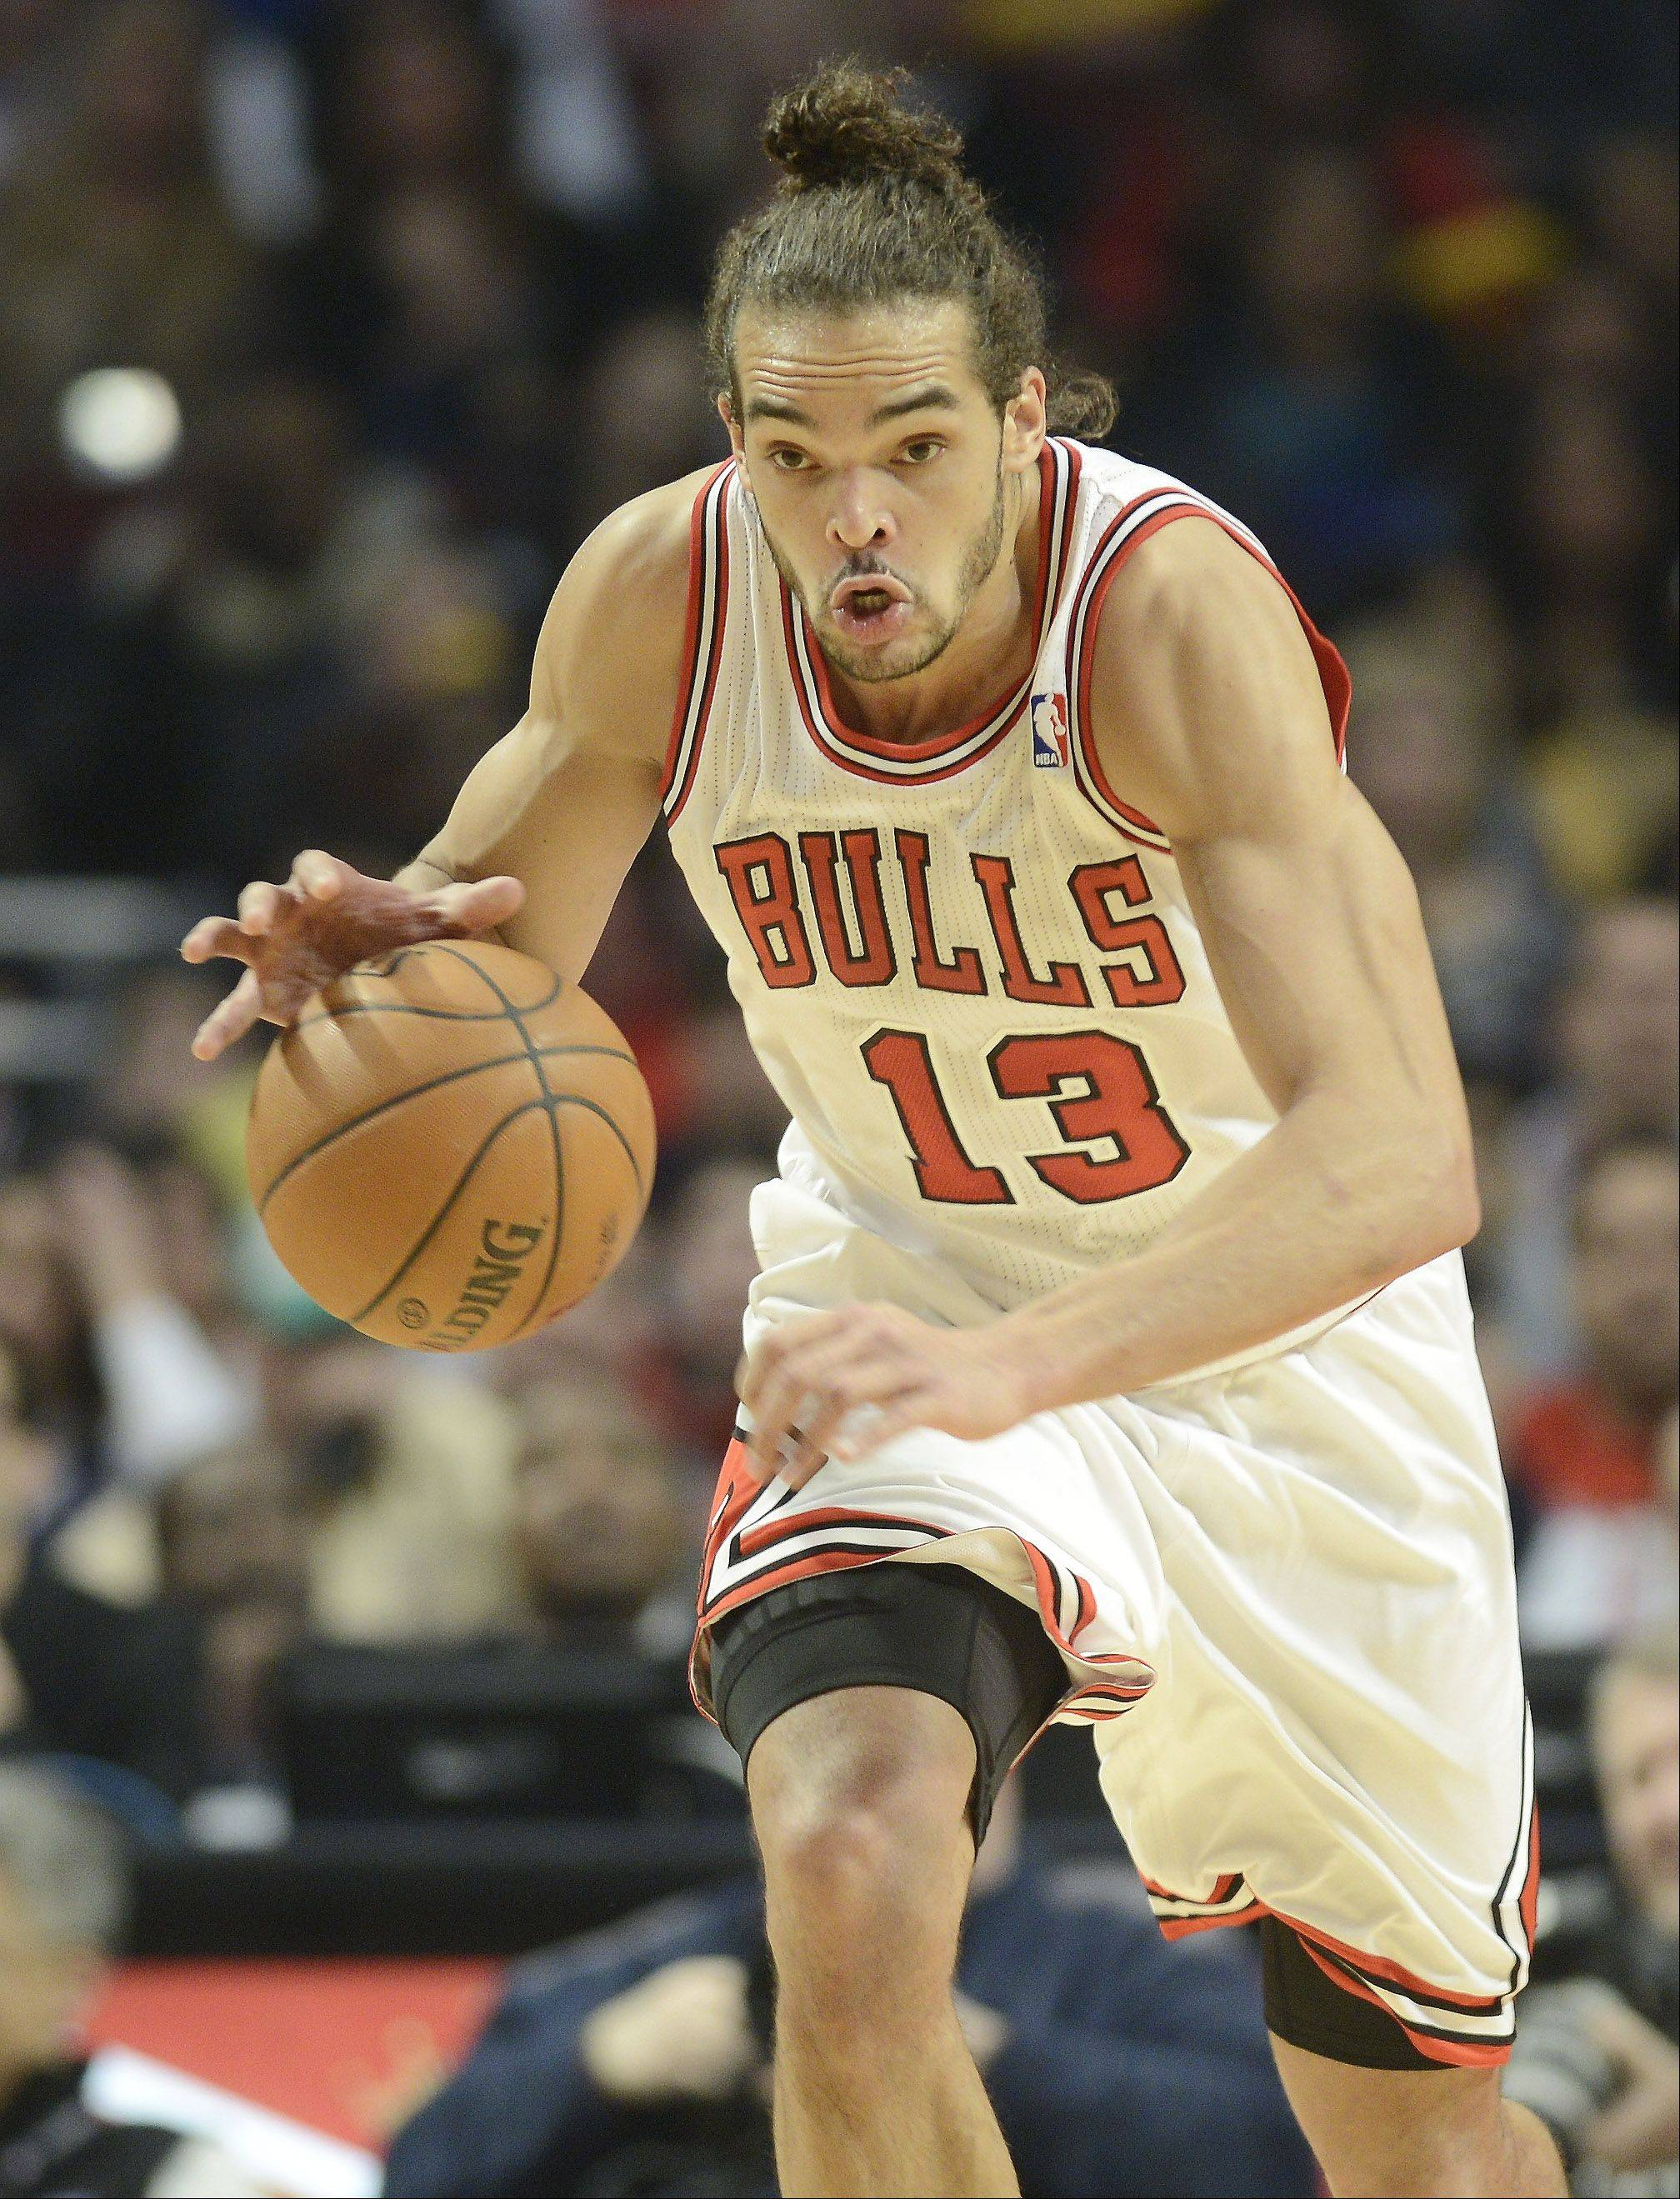 JOE LEWNARD/jlewnard@dailyherald.com Joakim Noah of the Bulls starts a fast break during Saturday's game against Memphis.